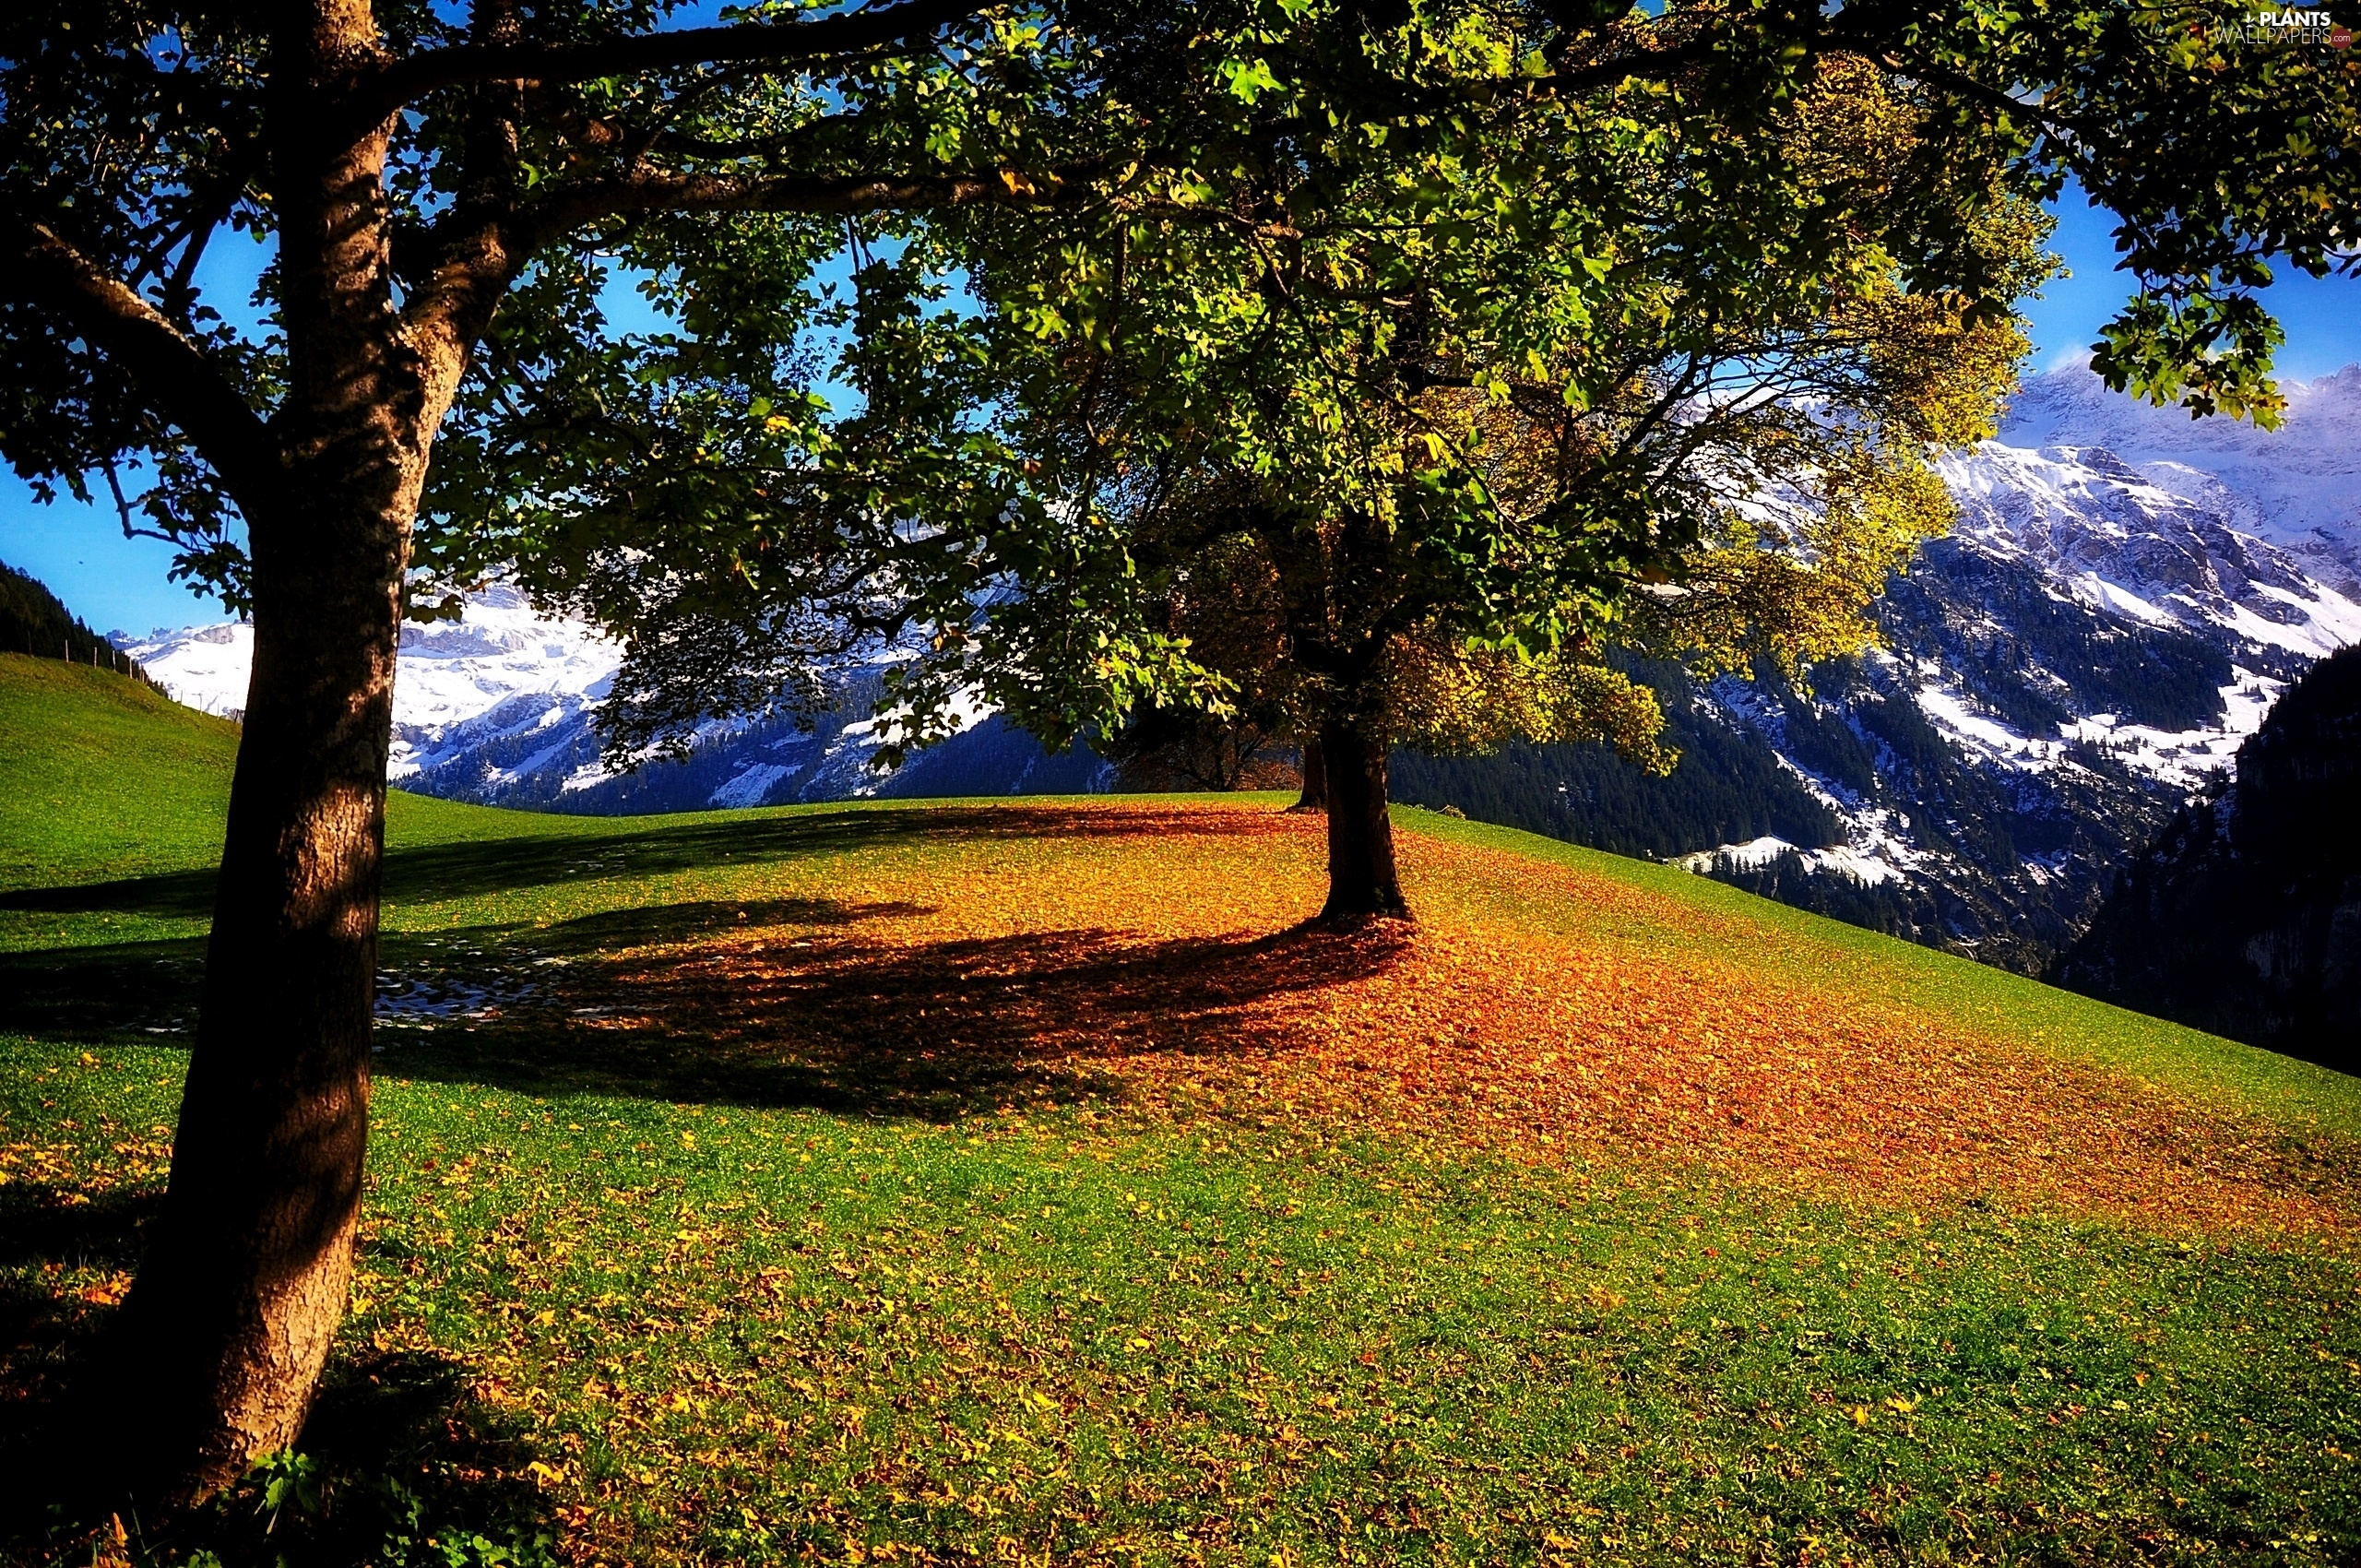 viewes, autumn, car in the meadow, trees, Mountains